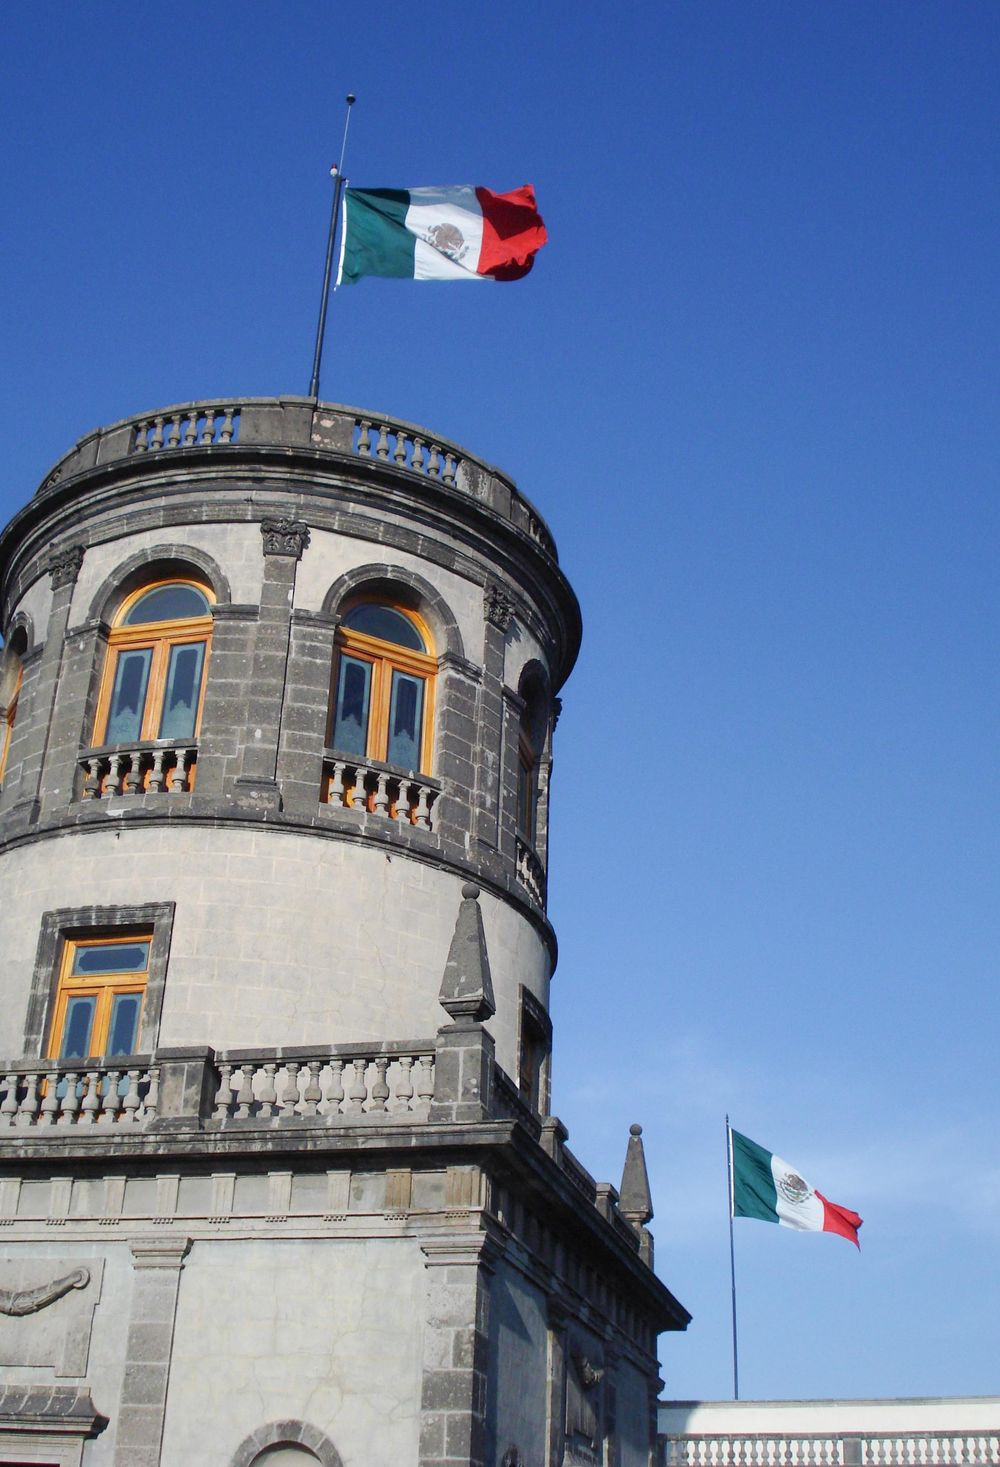 Mexico City, the unmentioned places - image 2 - student project